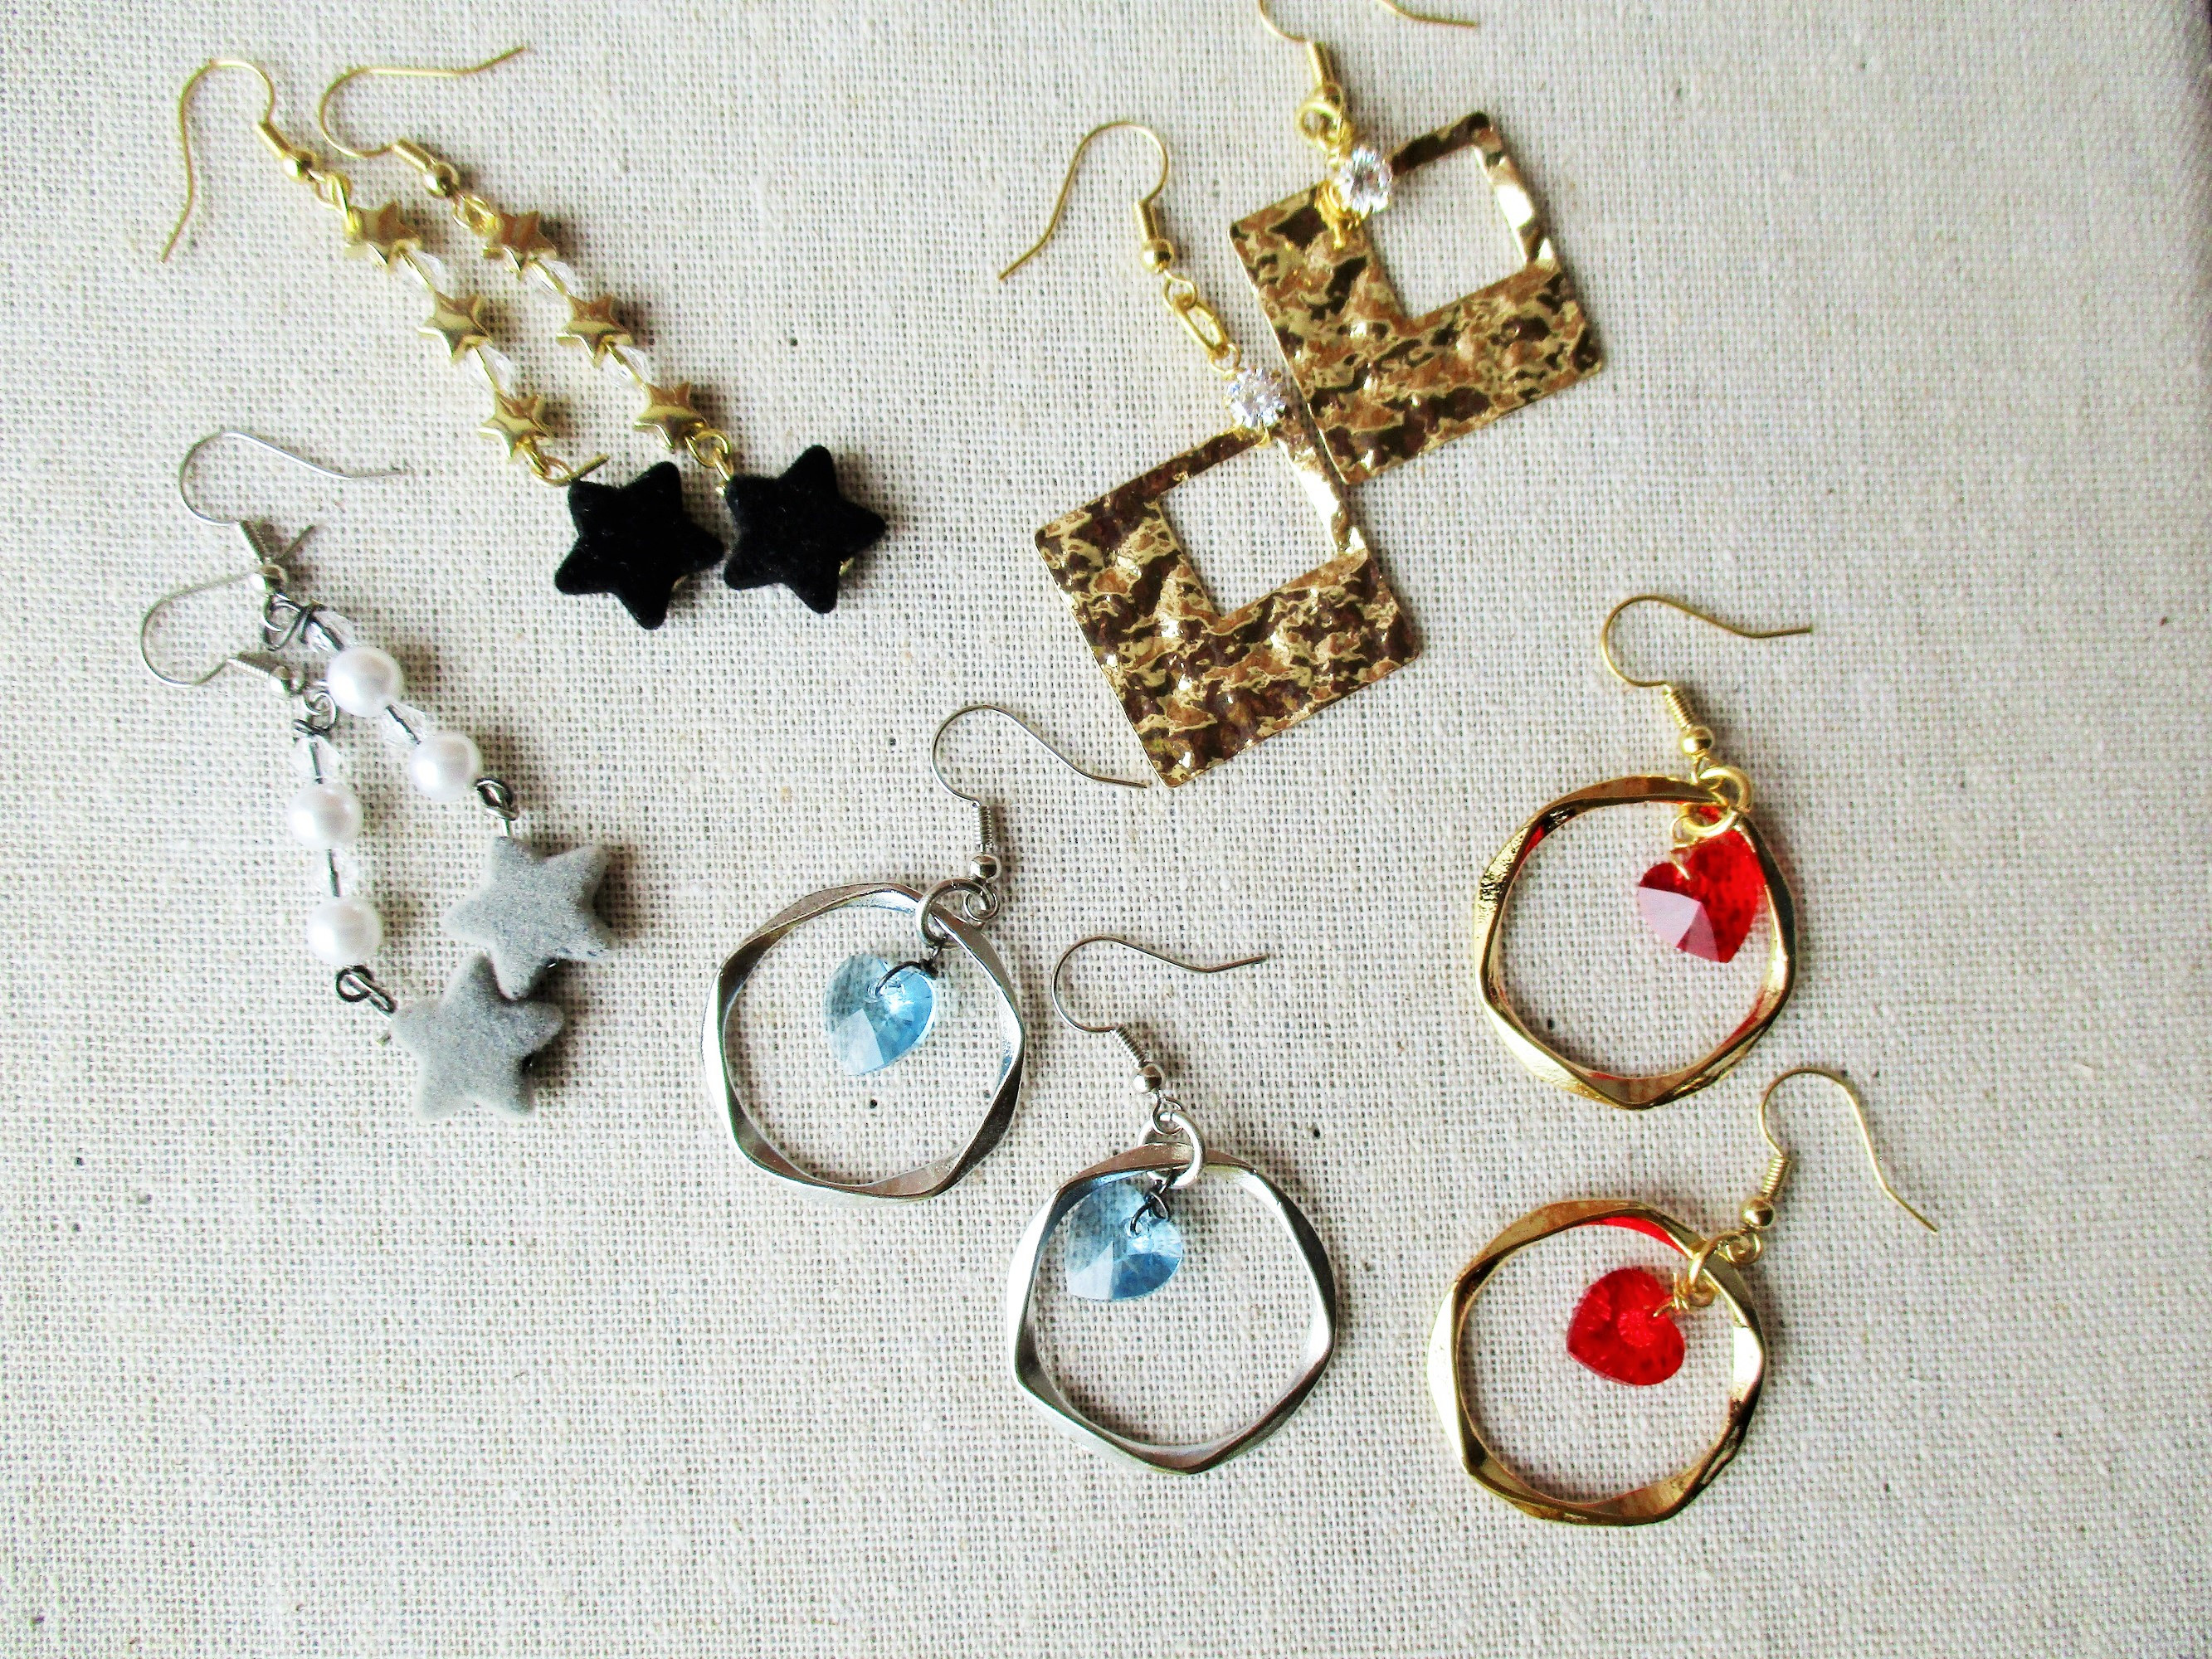 5 pairs of earrings.JPG